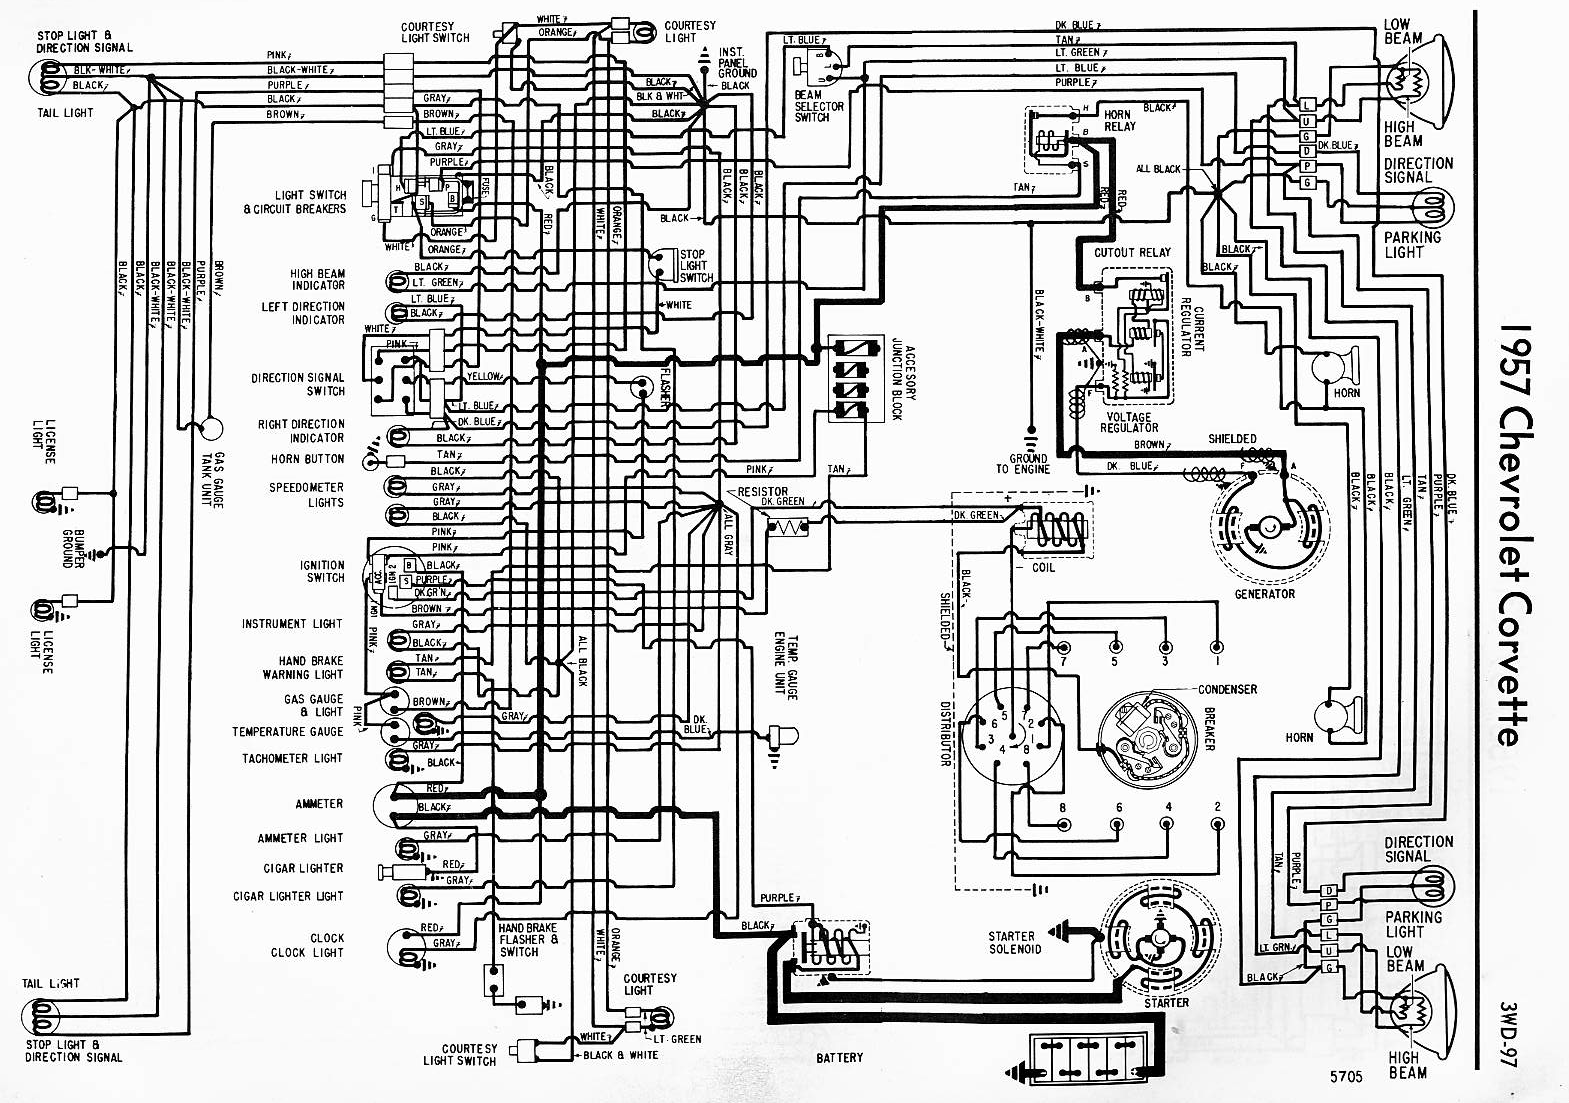 57 corvettte tracer schematic best one 1957 corvette wiring diagram willcox corvette, inc 1980 corvette wiring schematics at panicattacktreatment.co